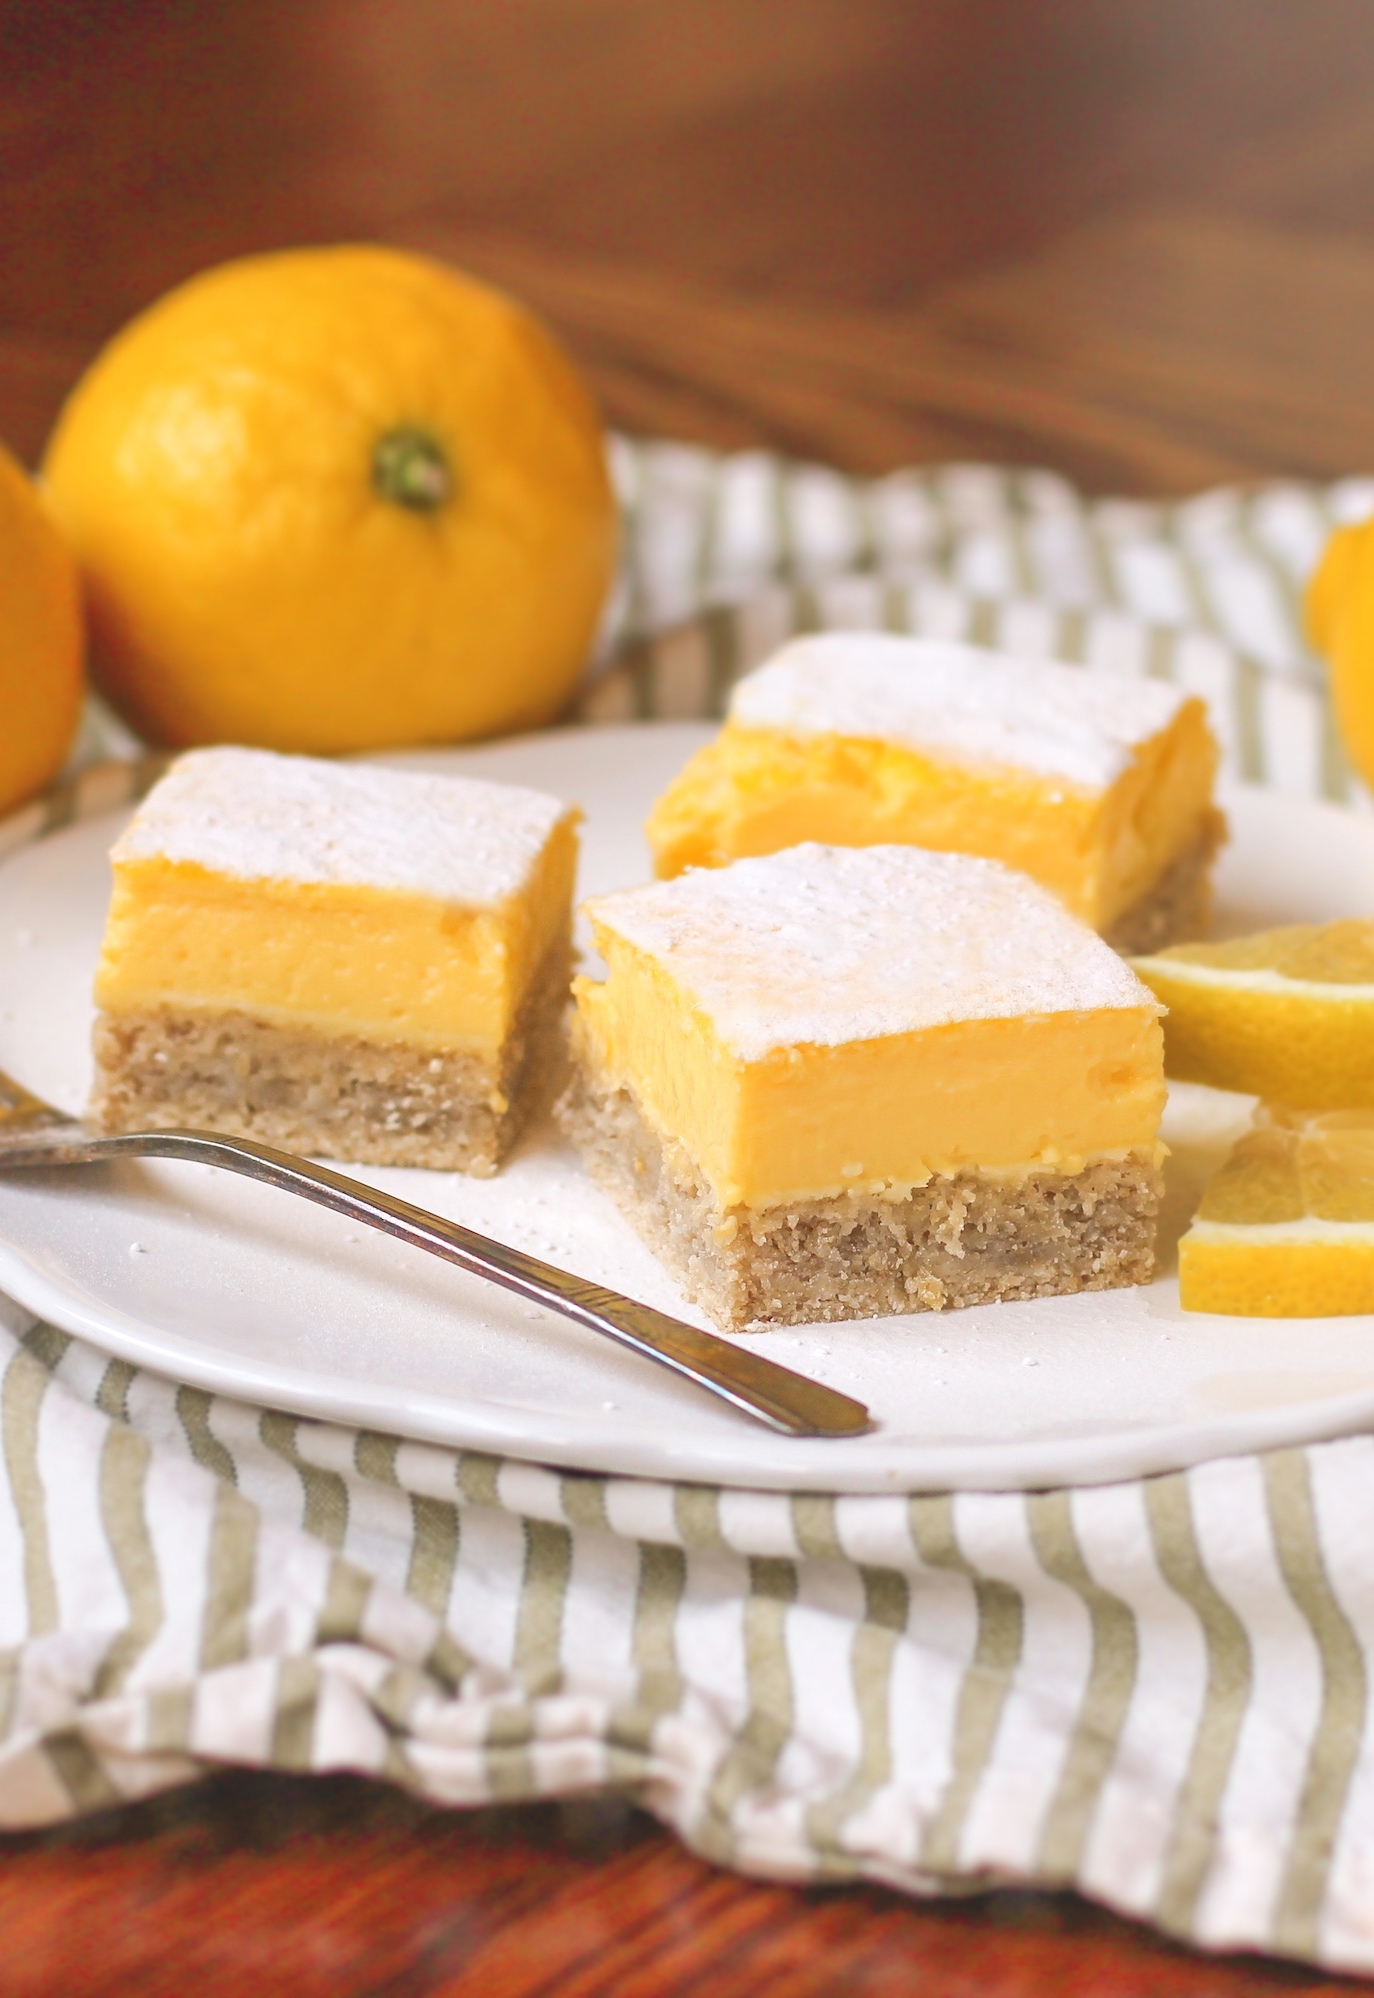 These Healthy Lemon Bars are made with stevia instead of refined sugar.  They are sugar